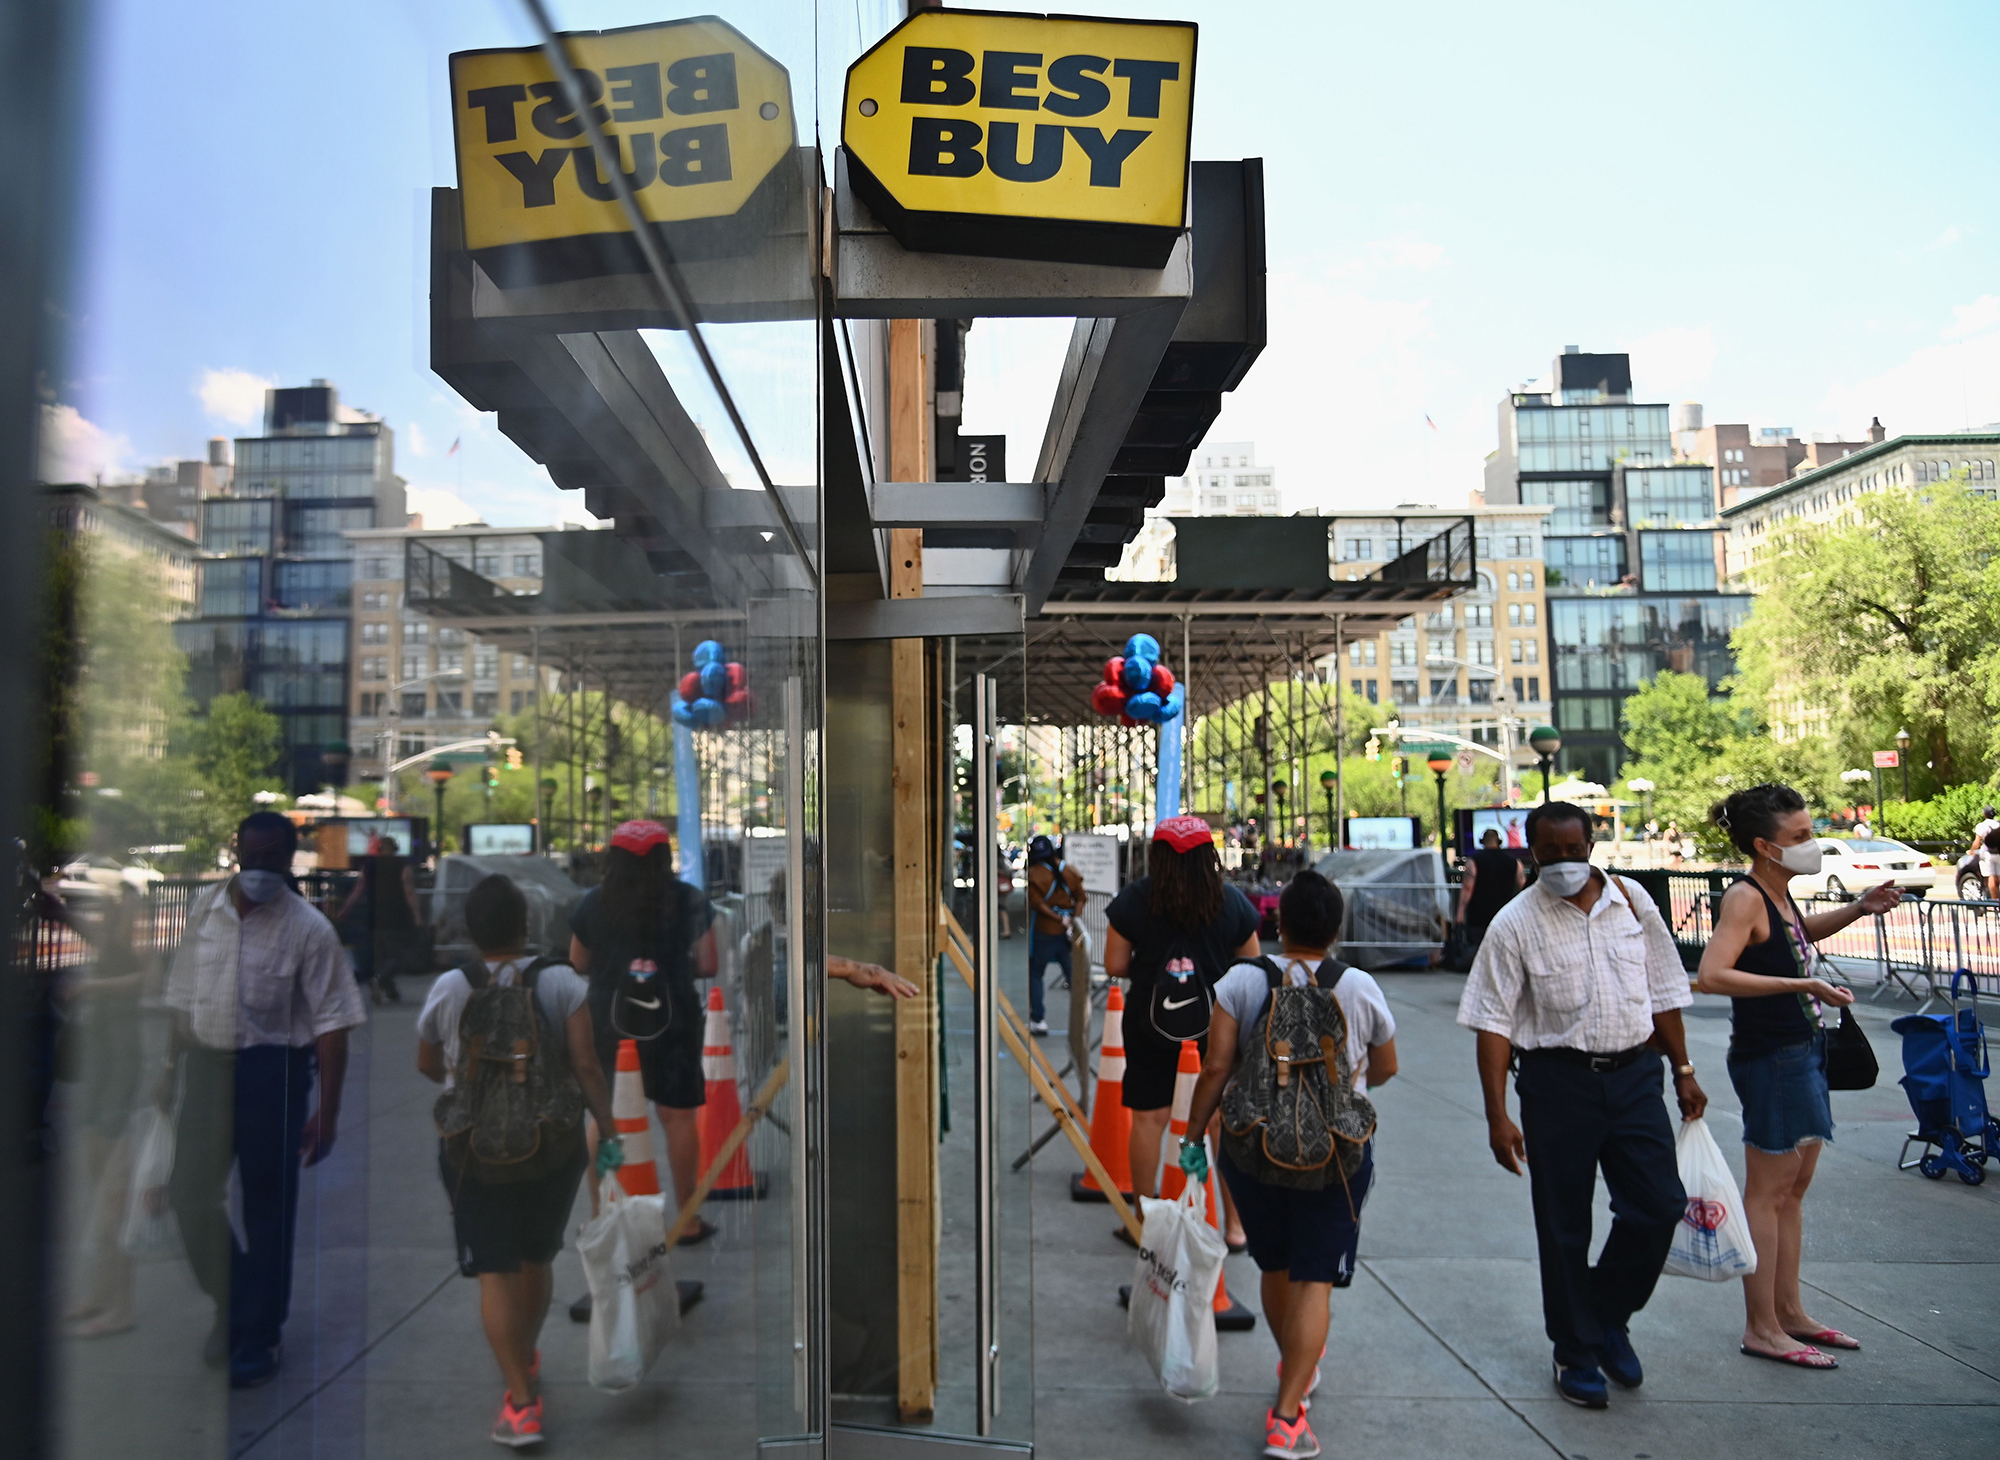 Best Buy wants to sell you luggage and outdoor grills